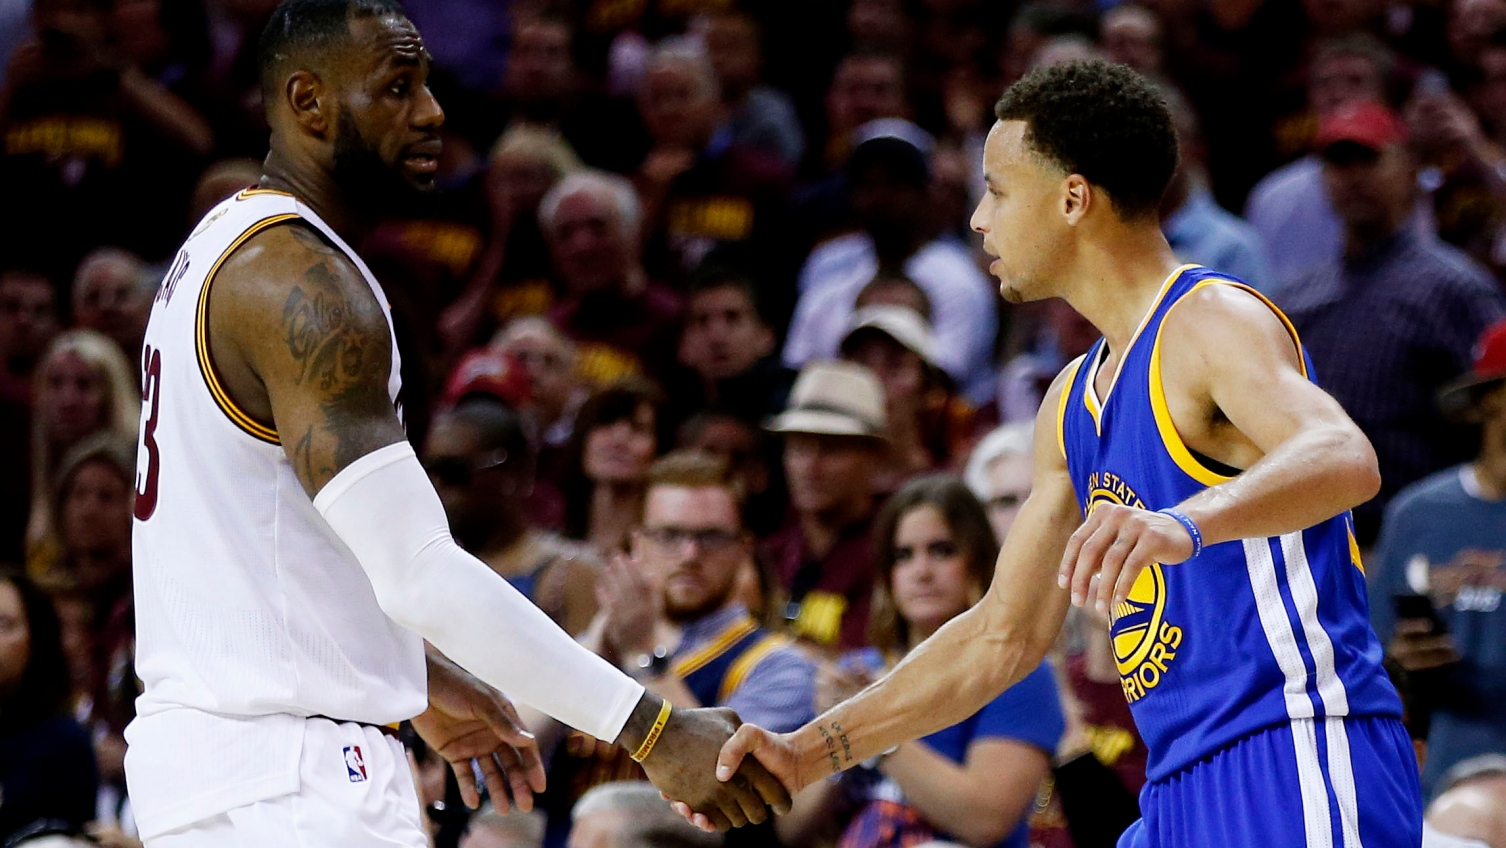 Plenty of LeBron James, Stephen Curry on big stages as NBA releases 2015-16 schedule